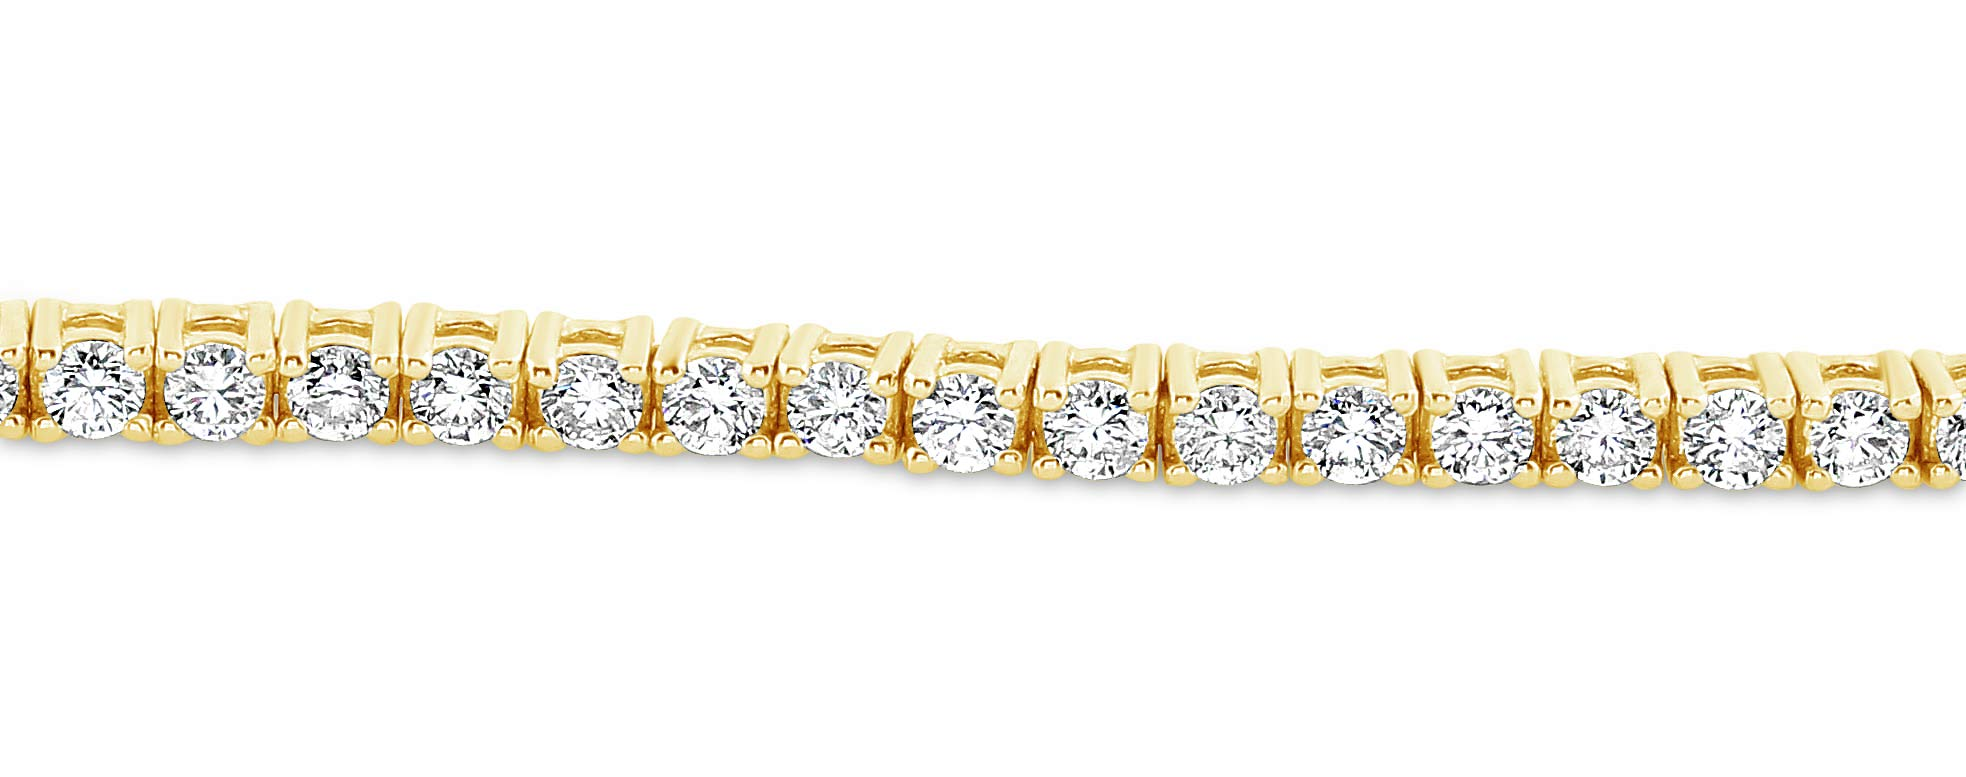 Diamond Tennis Bracelet 2 ct Total of Bright White (G-VS) Natural Diamonds in 14k Gold - Choice of Colour (Yellow-Gold, 2.00) by G&S Diamonds